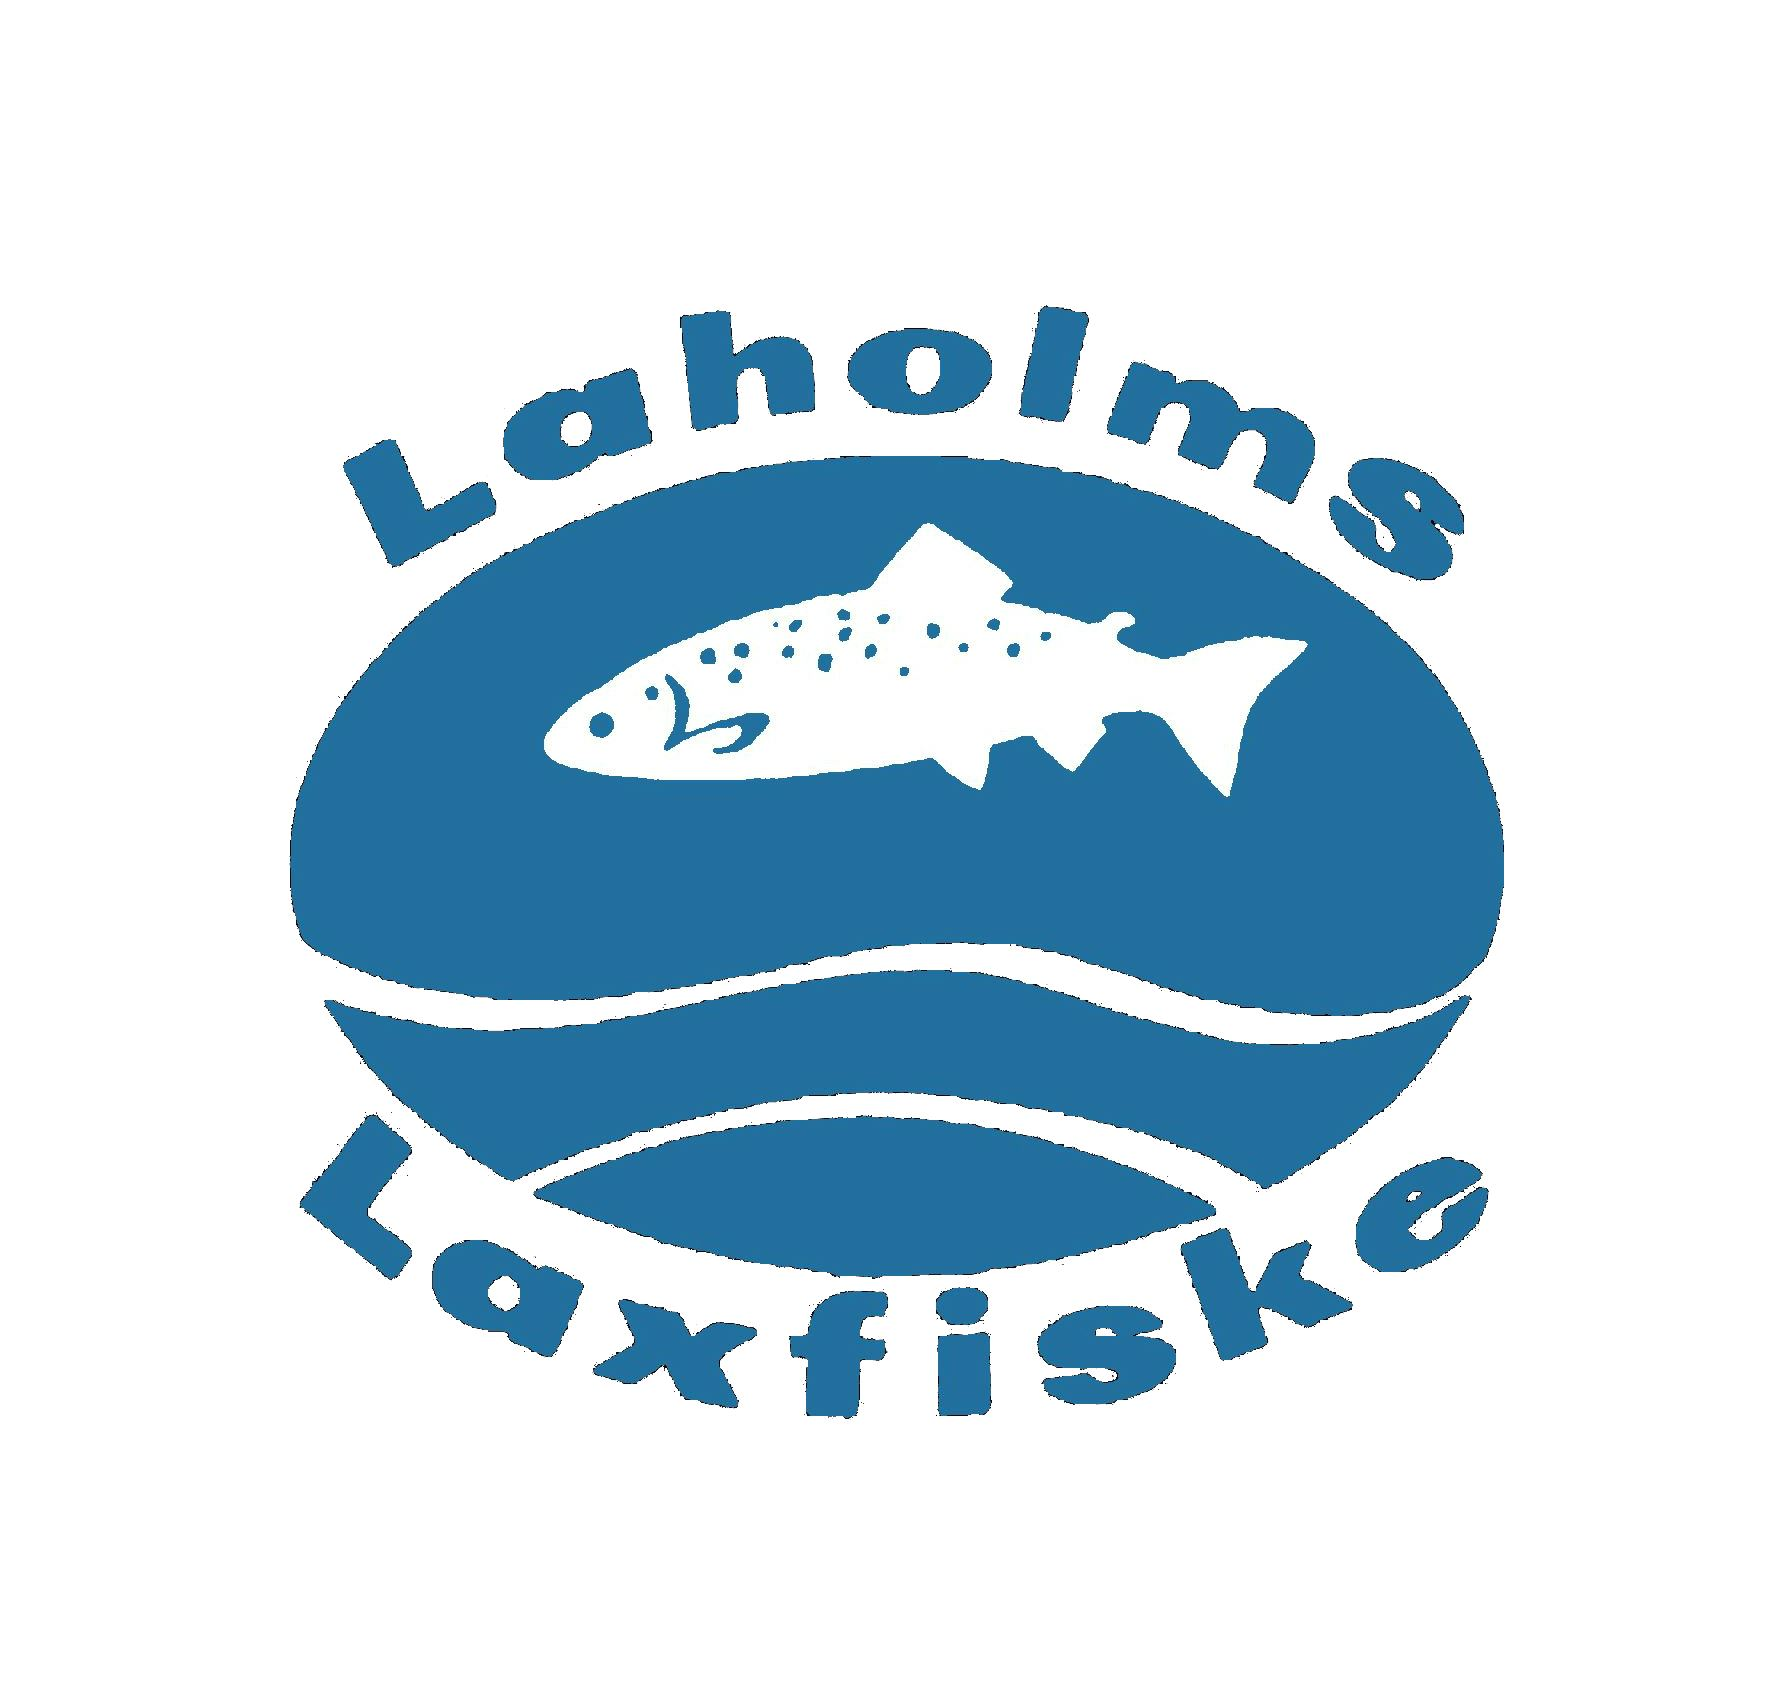 Relax Fishing Sweden - Season ticket, Laholms Laxfiske,Valid:01/03/2019—14/10/2019